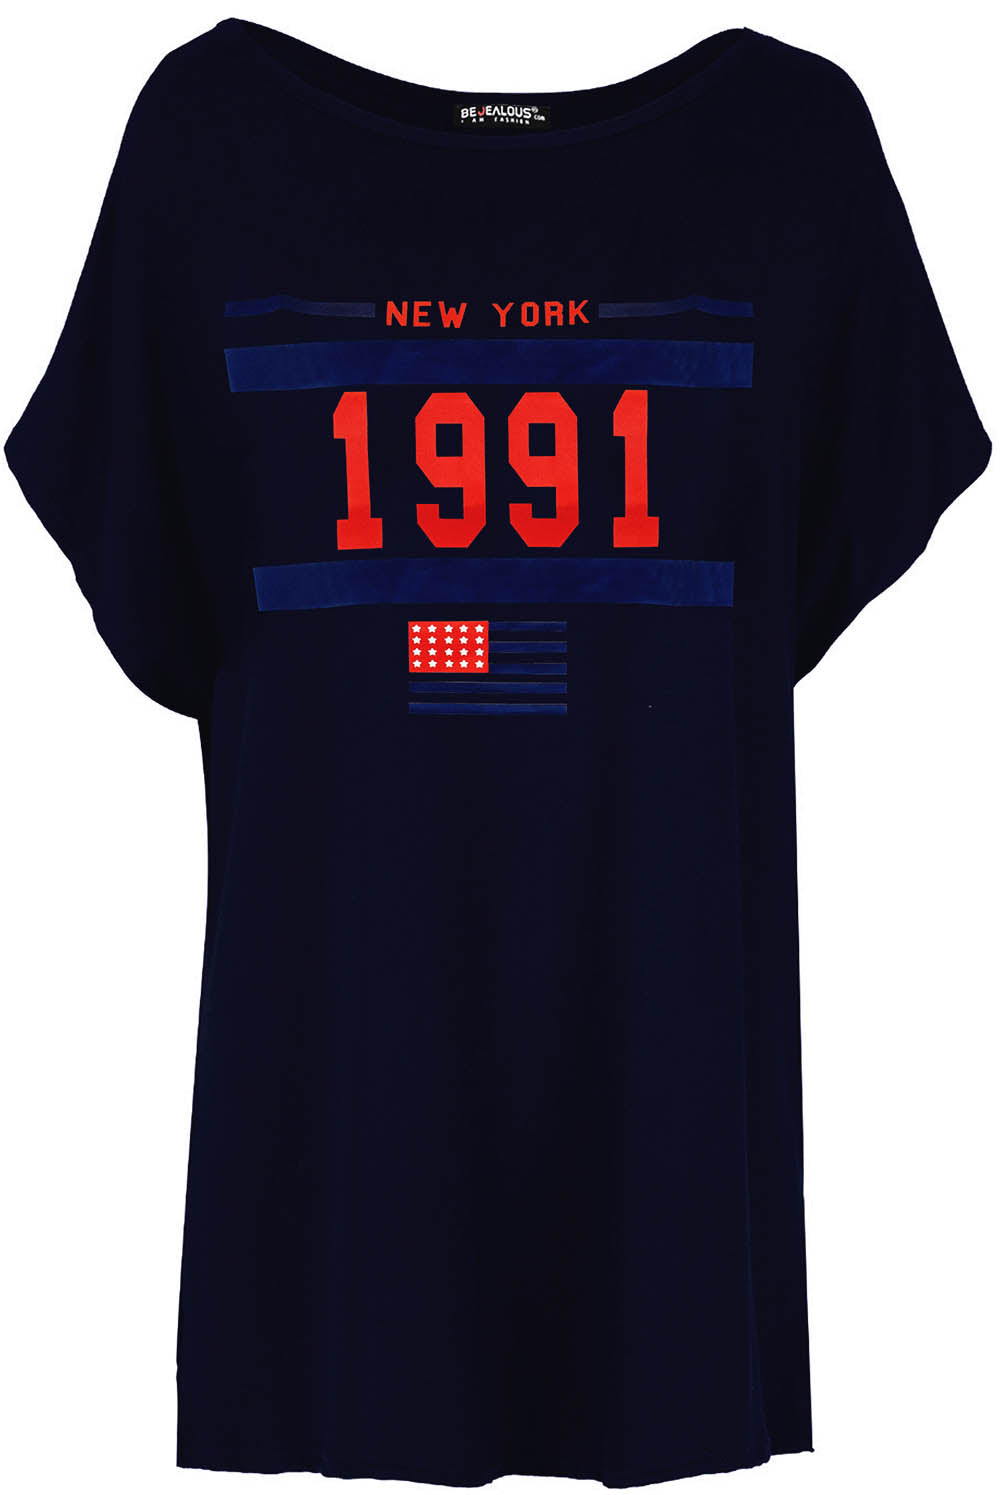 New York Oversize Slogan Bat Wing Tshirt - bejealous-com